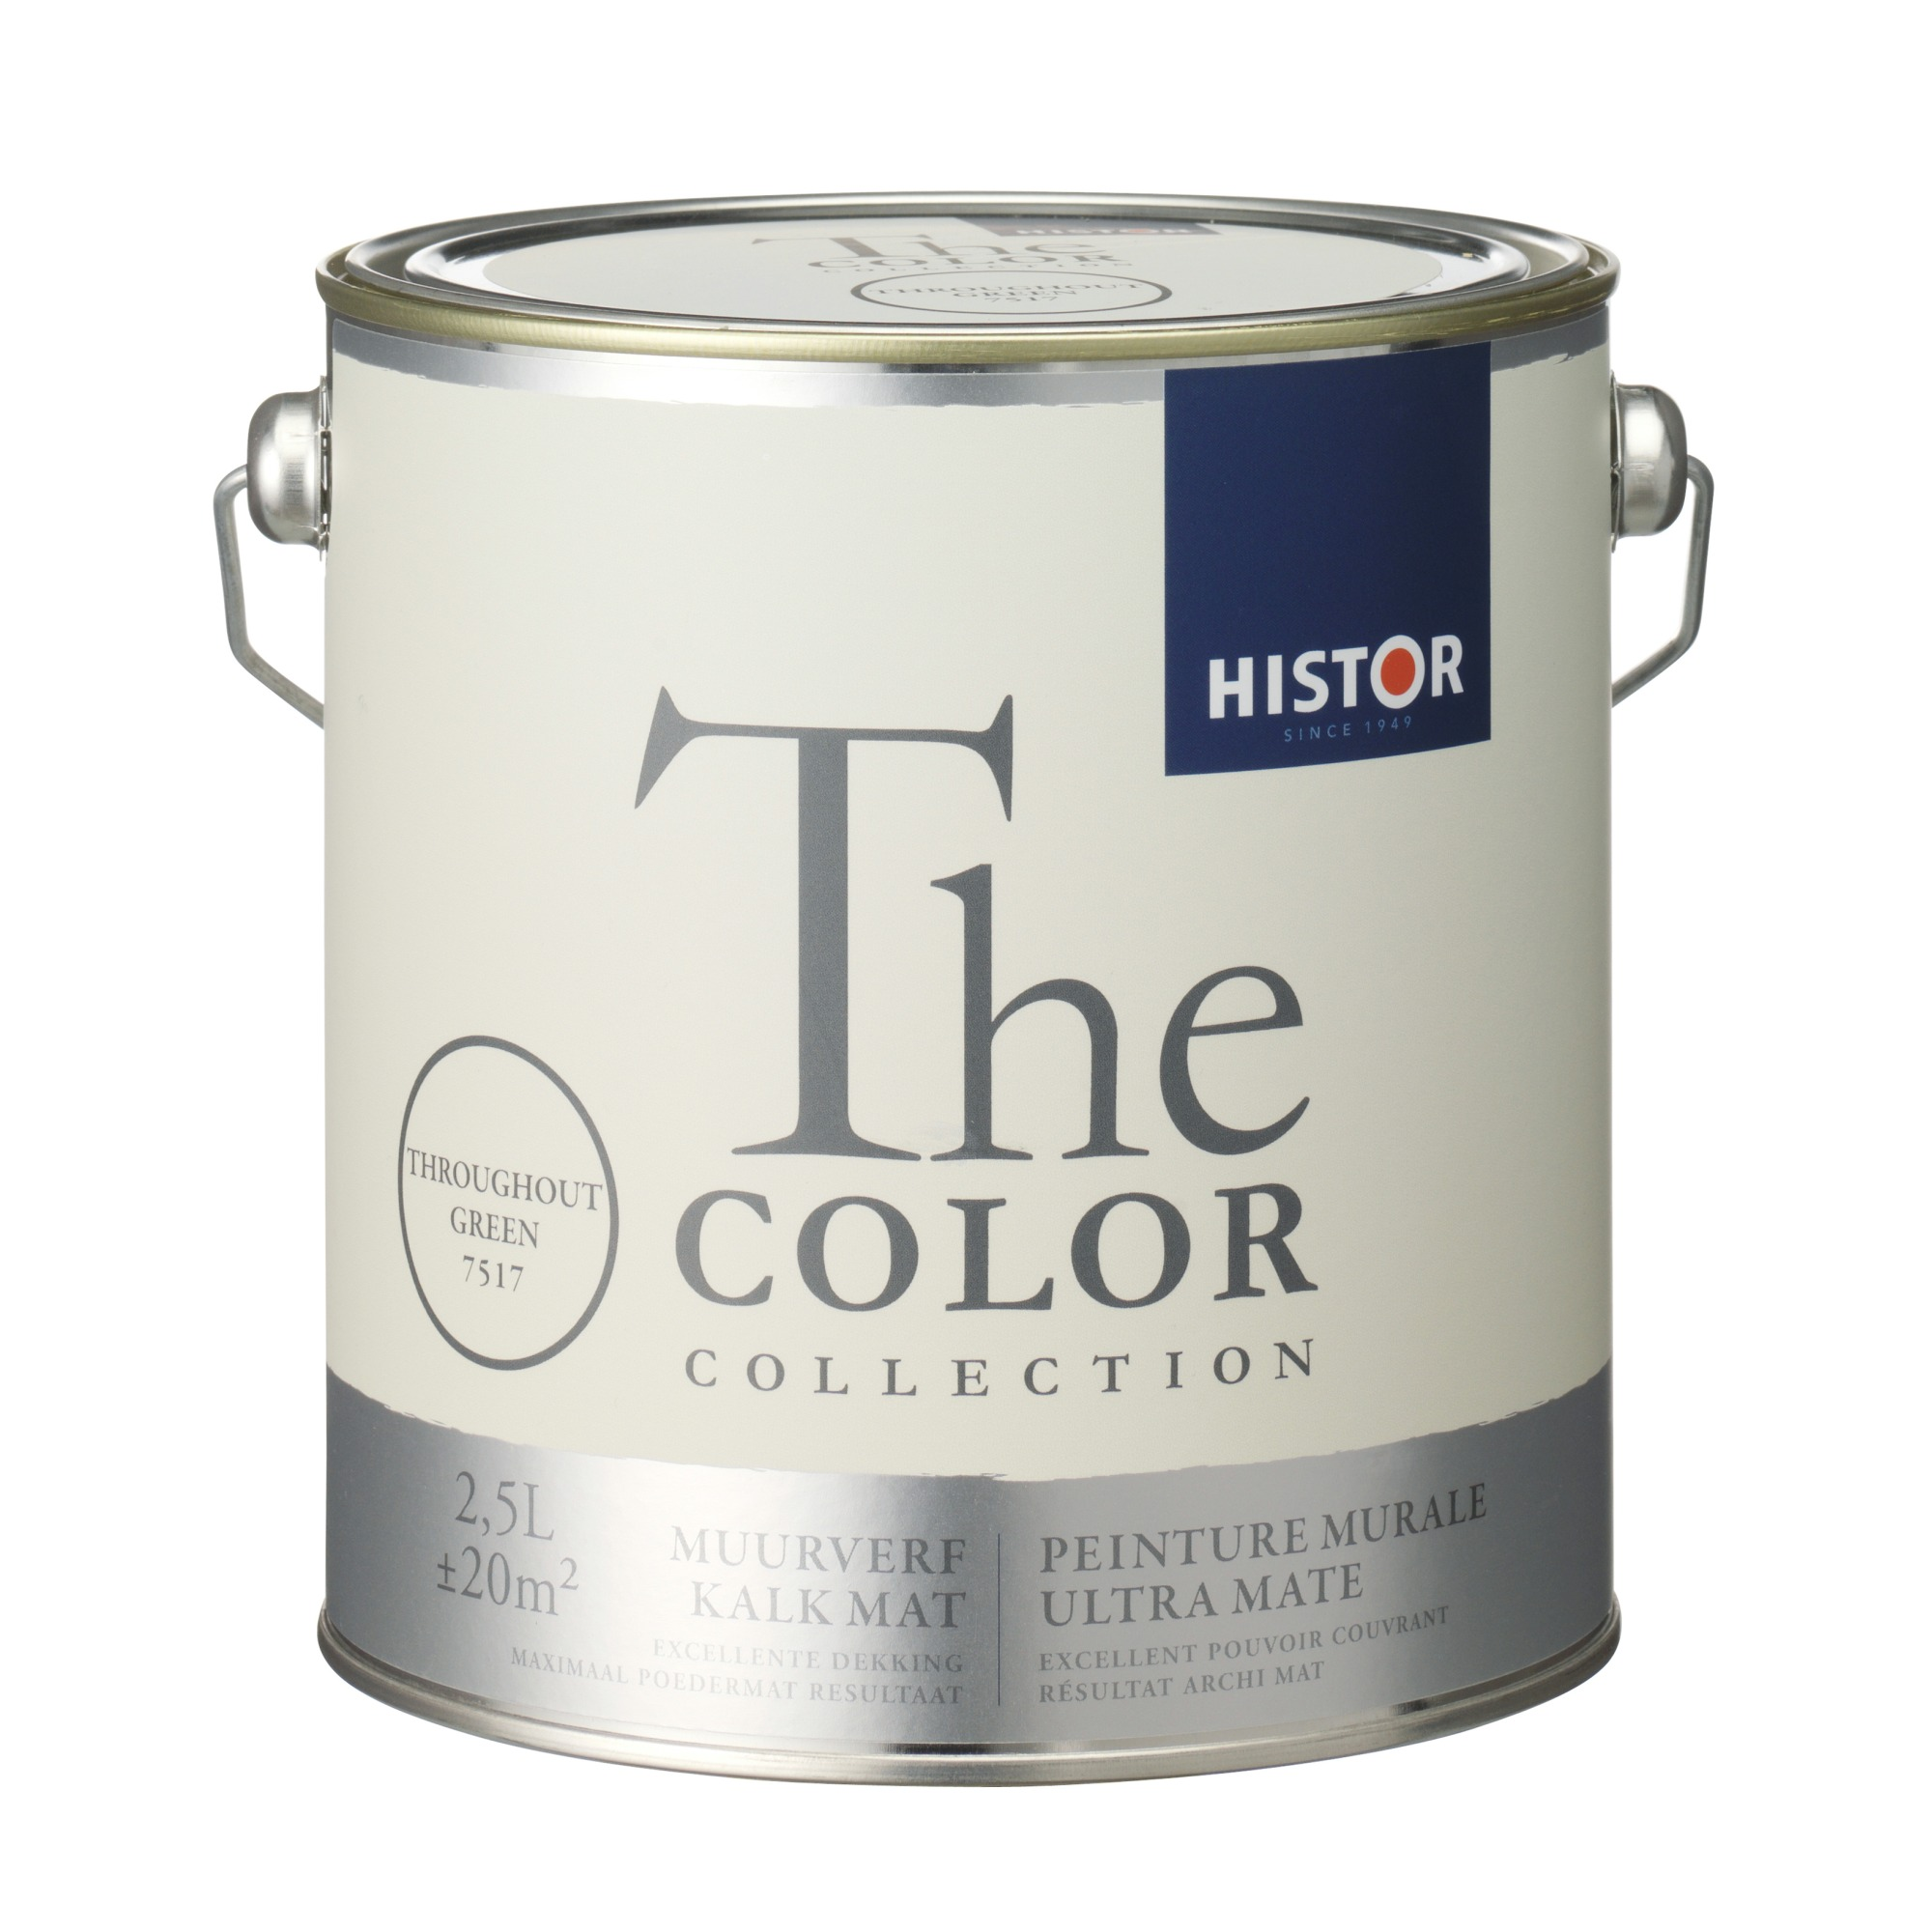 Histor Verf Gamma Histor The Color Collection Muurverf Throughout Green 2 5